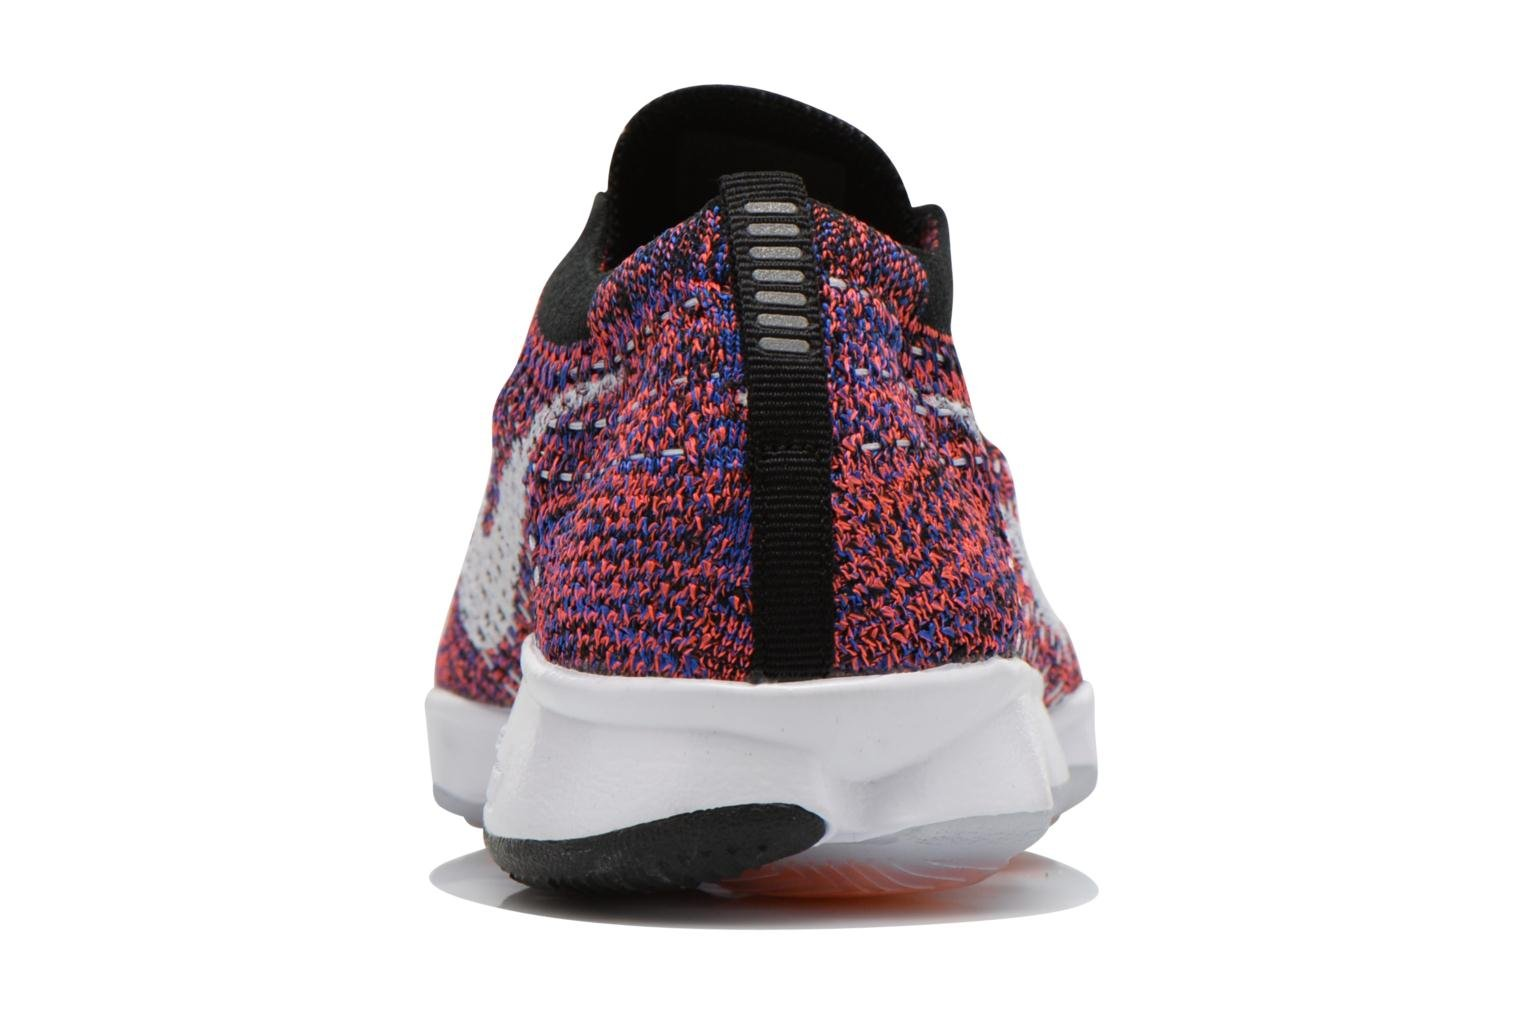 Wmns Nike Flyknit Zoom Agility Bright Crimson/White-Black